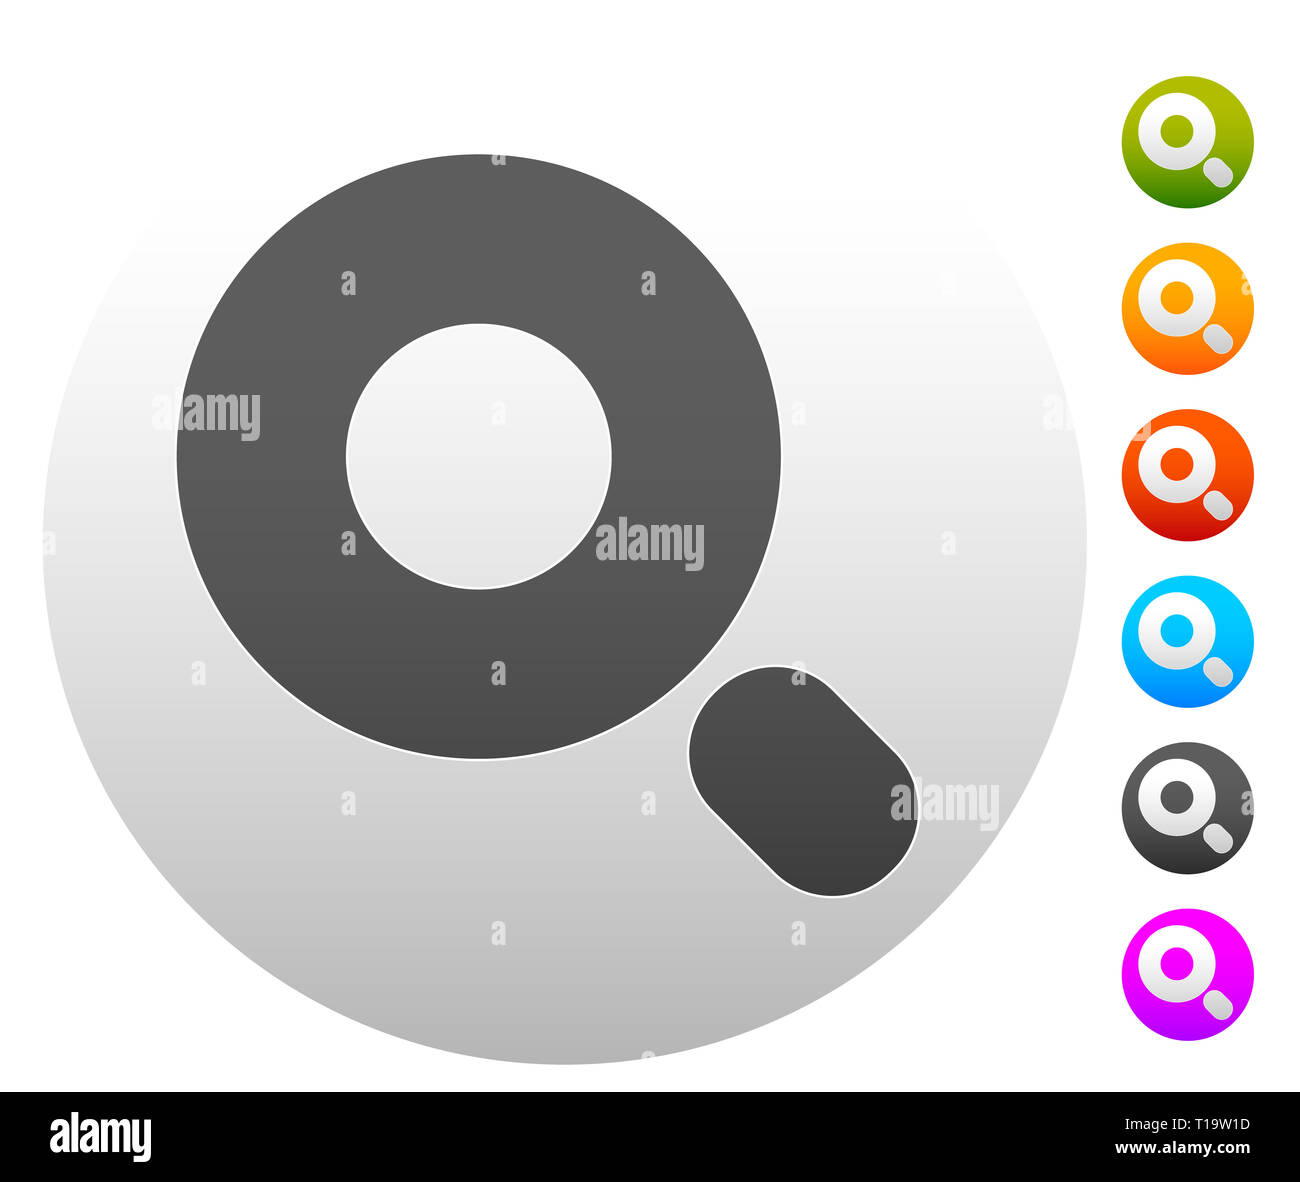 Magnifier / Magnifying glass symbol, icon. Seach, seek, zoom, enlarge themes. - Stock Image